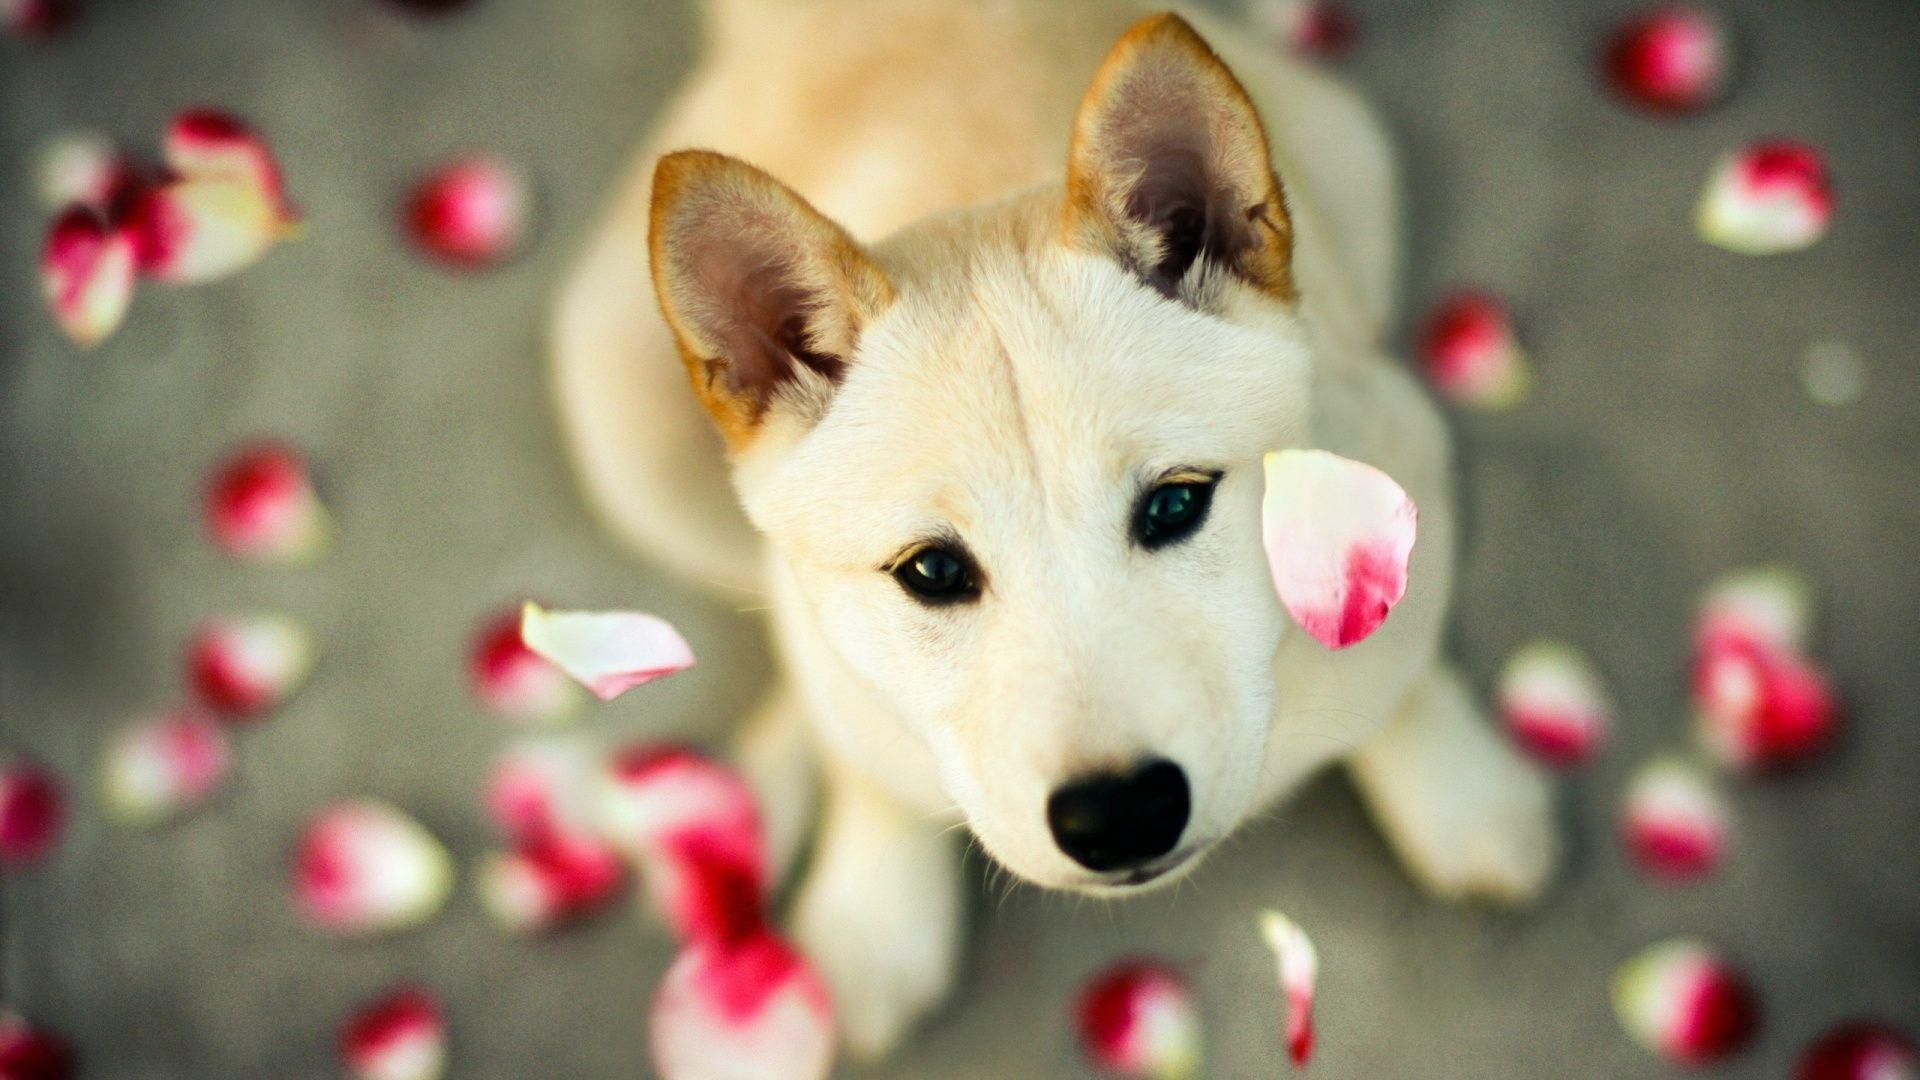 Cute Dog Wallpapers 1920x1080